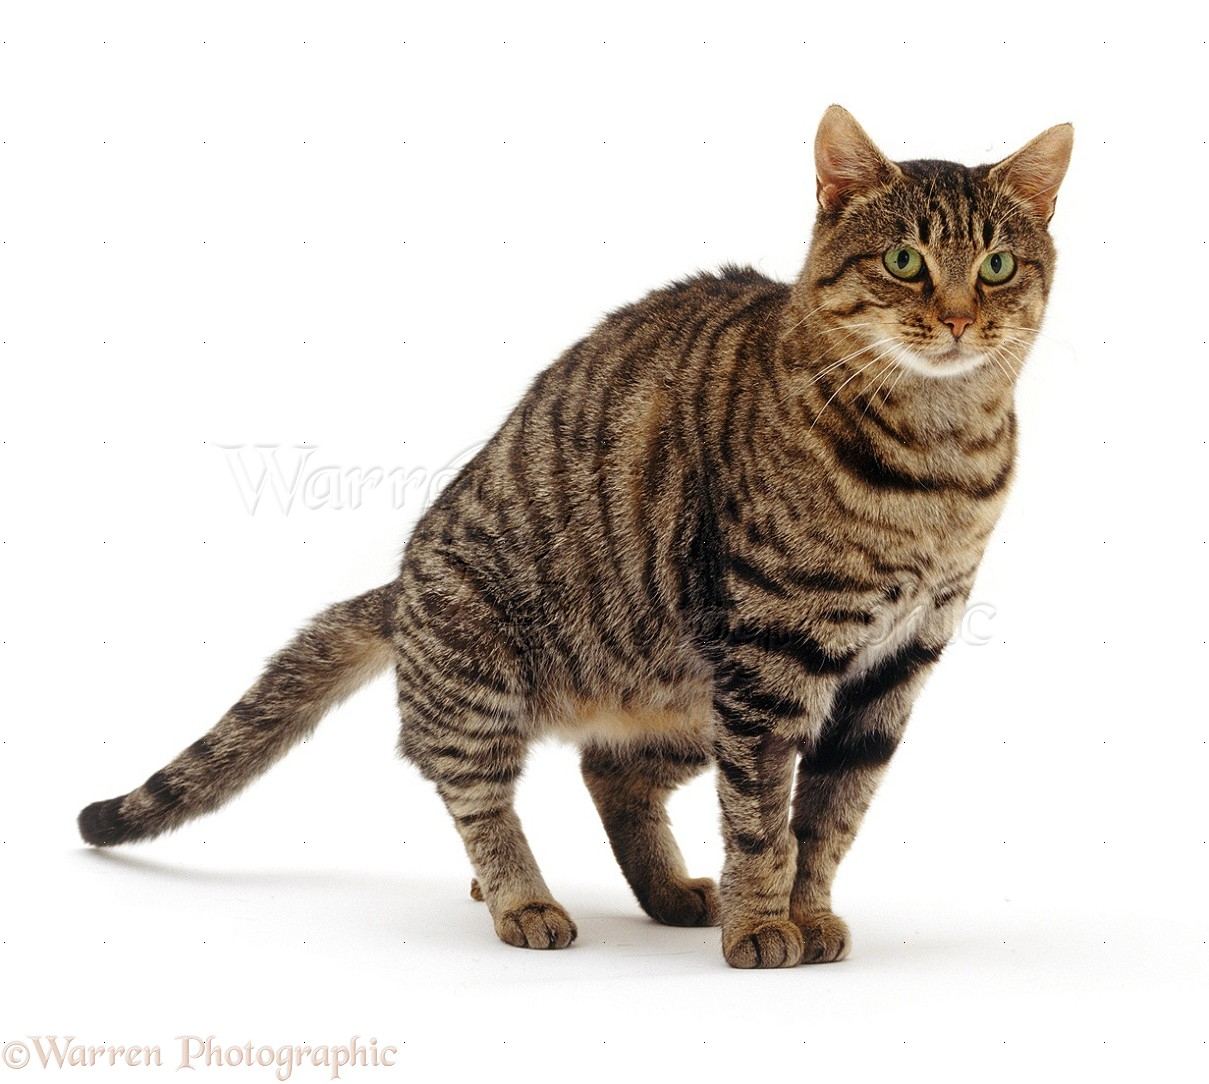 brown tabby cat defecating on the floor photo   wp13247